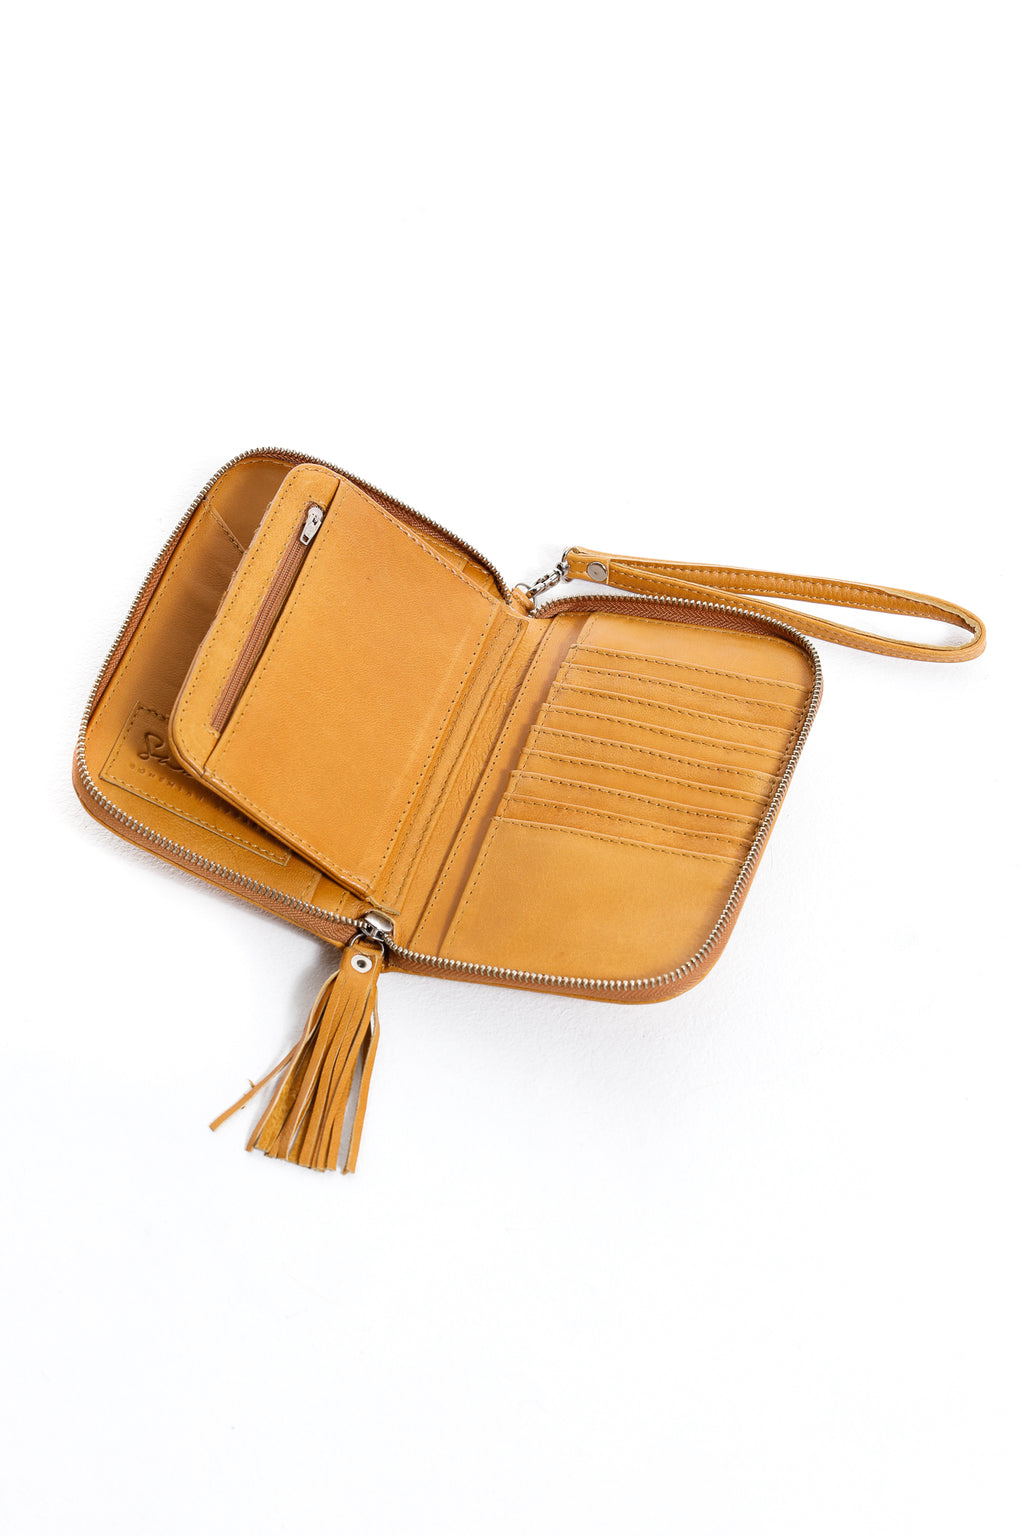 Lilou Travel Wallet - Tan